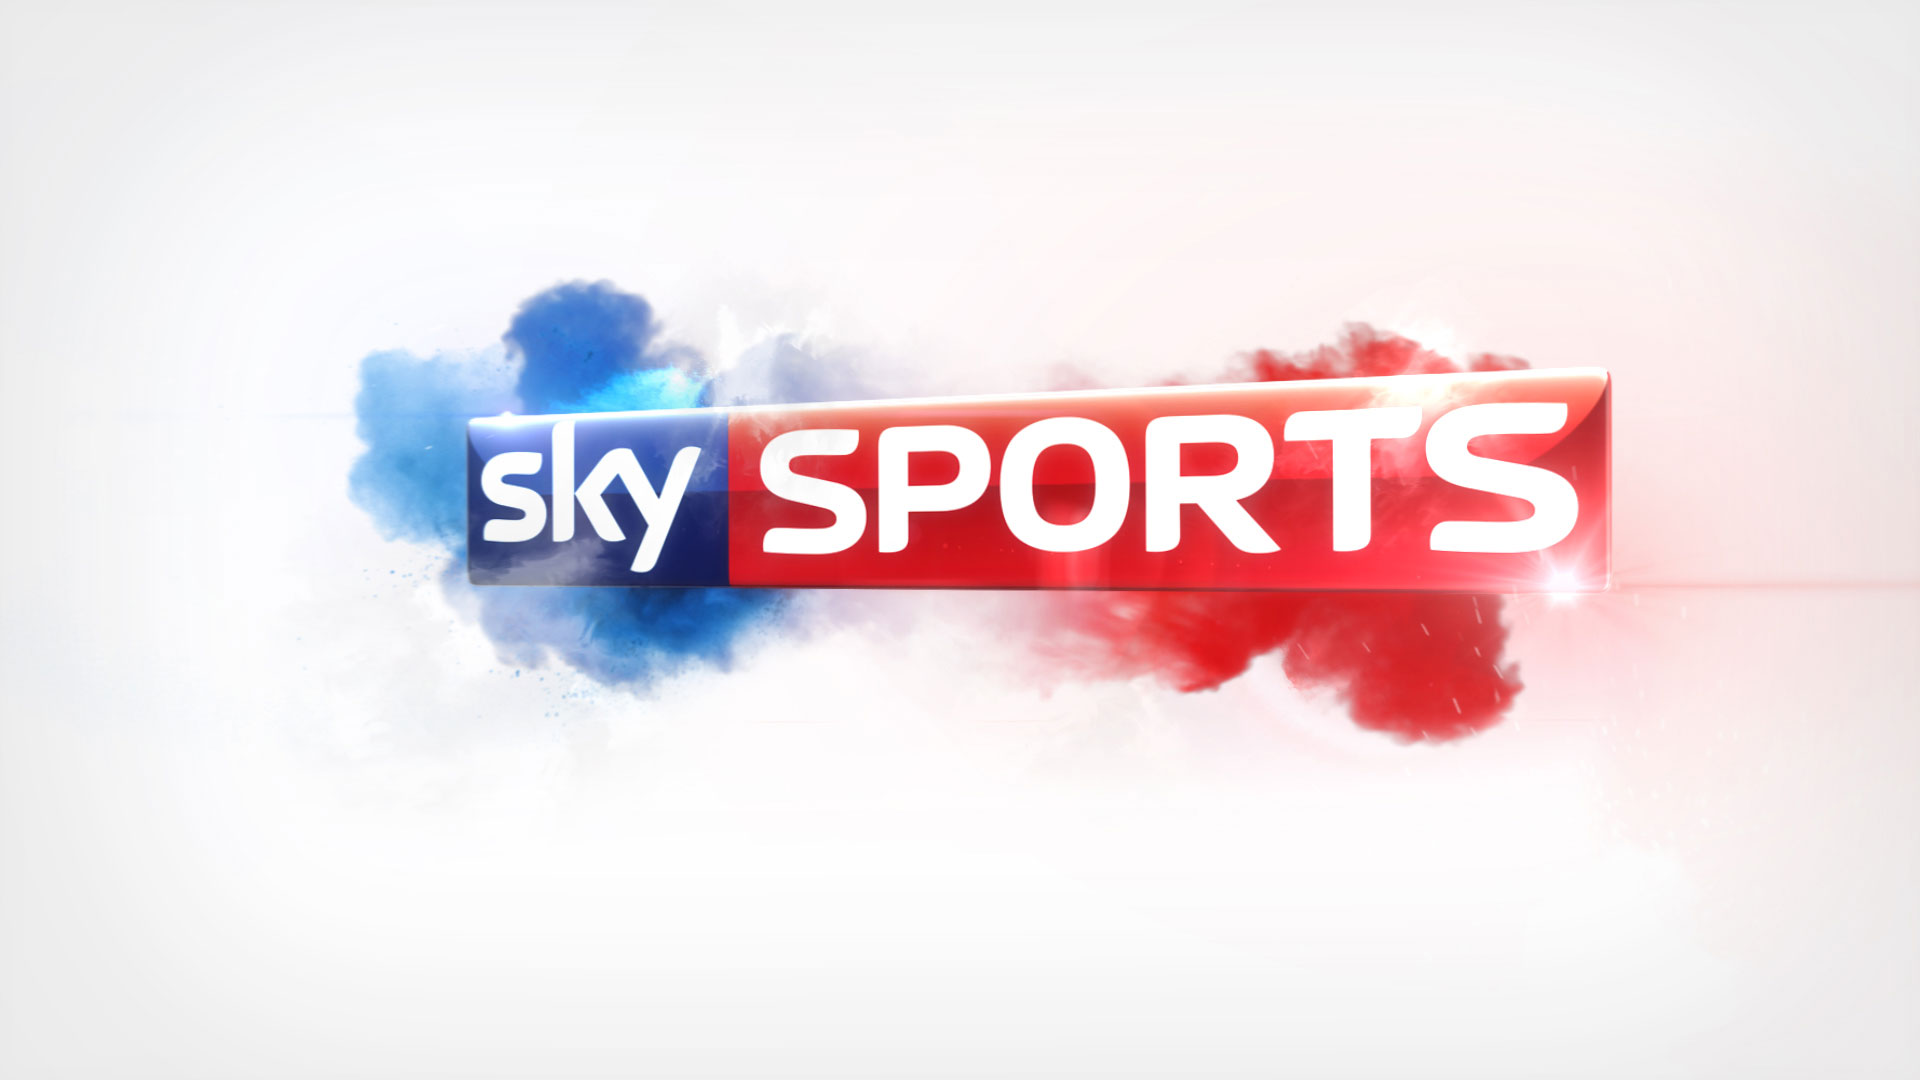 3d Effect Live Wallpapers Download Sky Sports Wallpaper Gallery